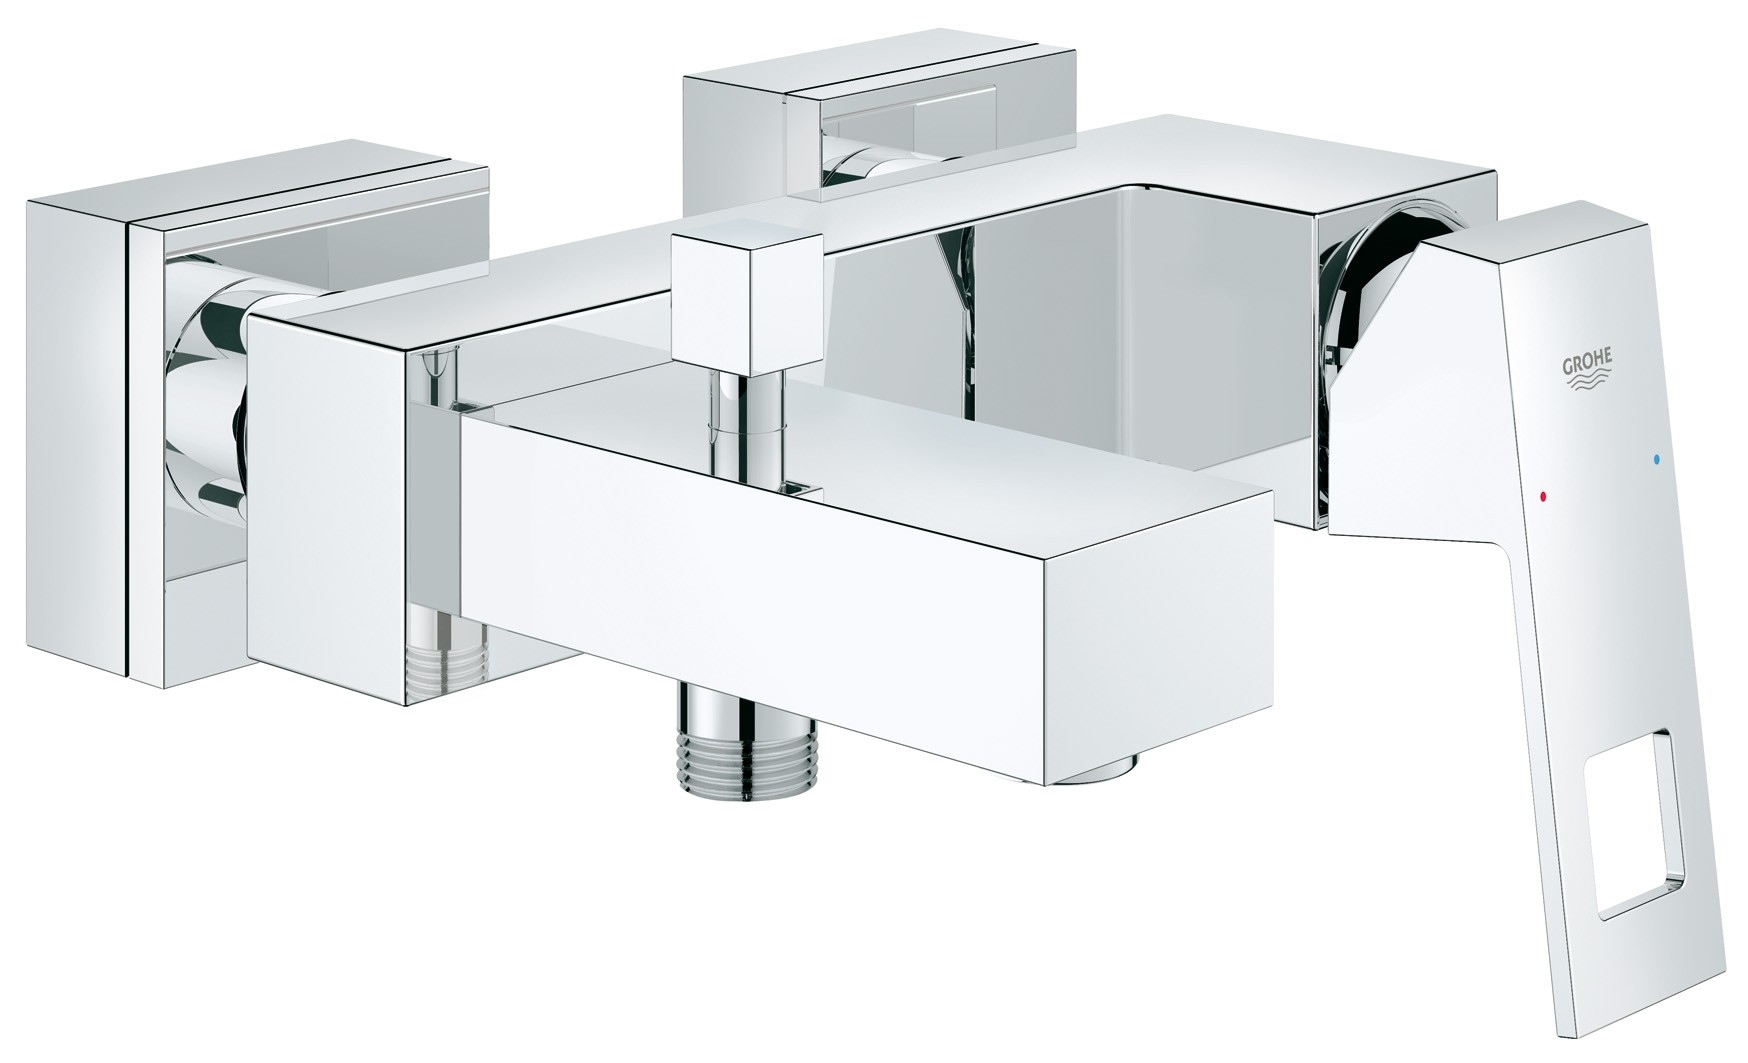 grohe mitigeur bain douche eurocube 23140000. Black Bedroom Furniture Sets. Home Design Ideas